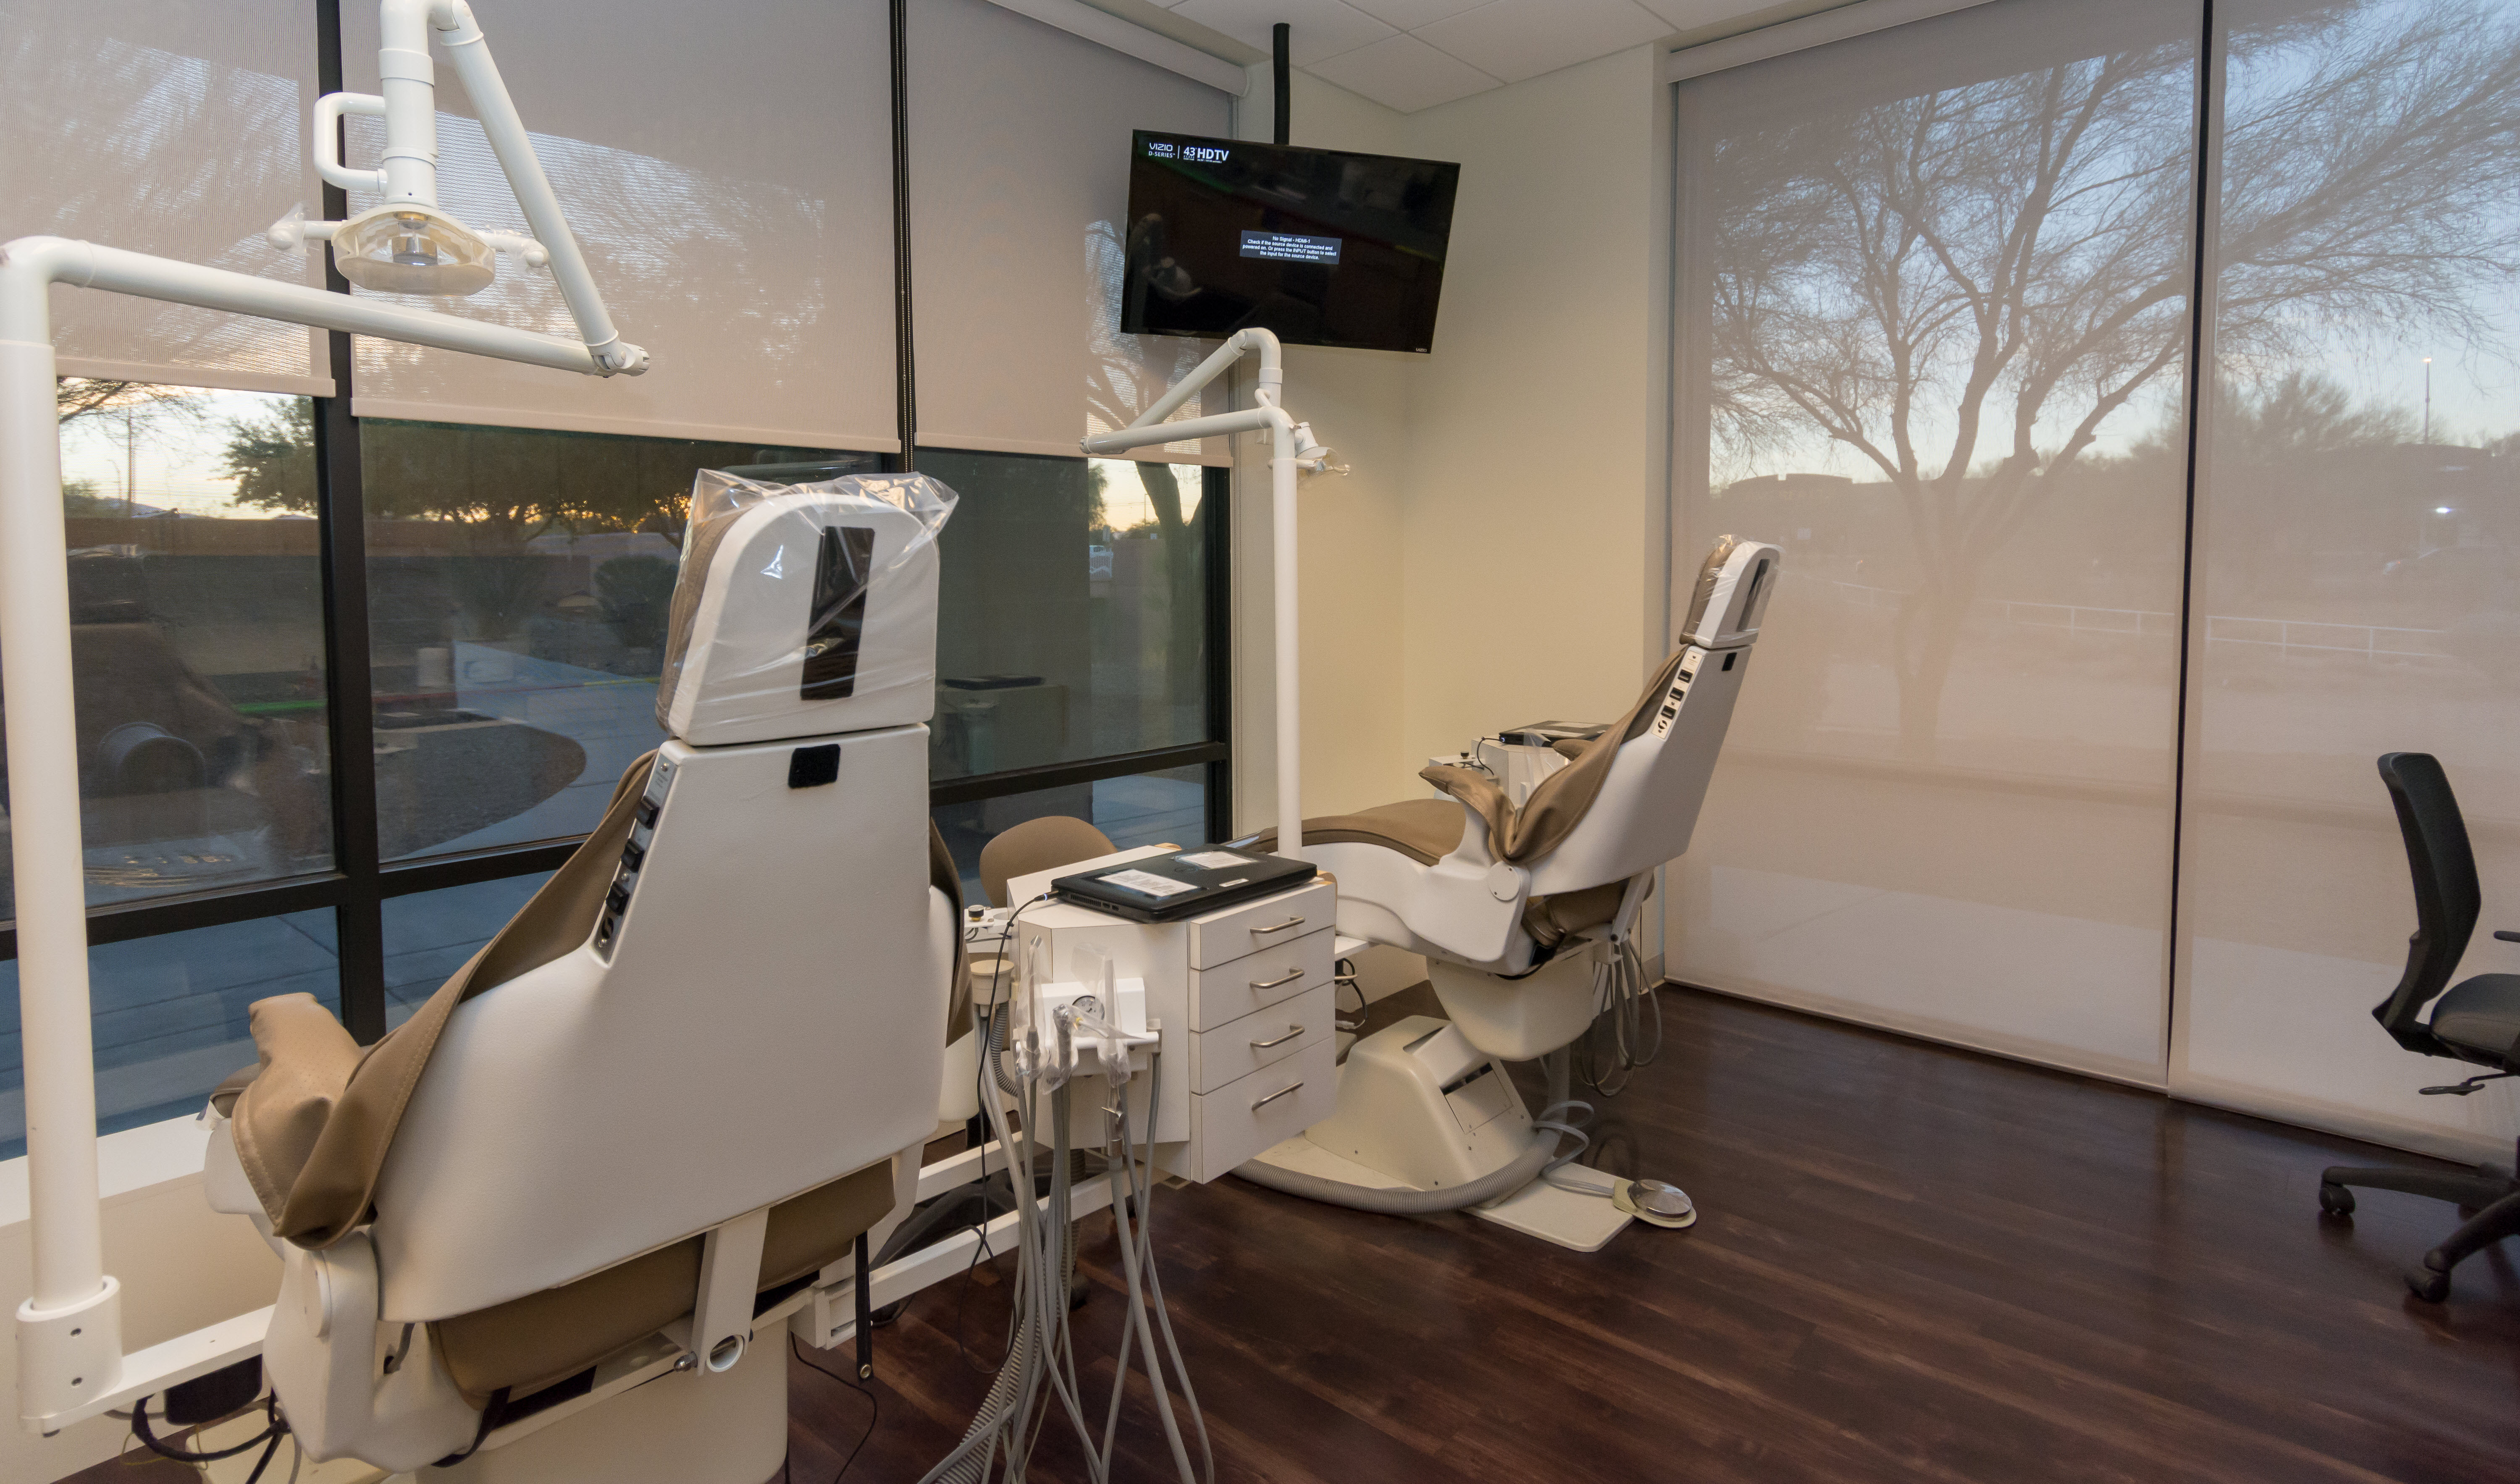 Rita Ranch Dental Group and Orthodontics image 7